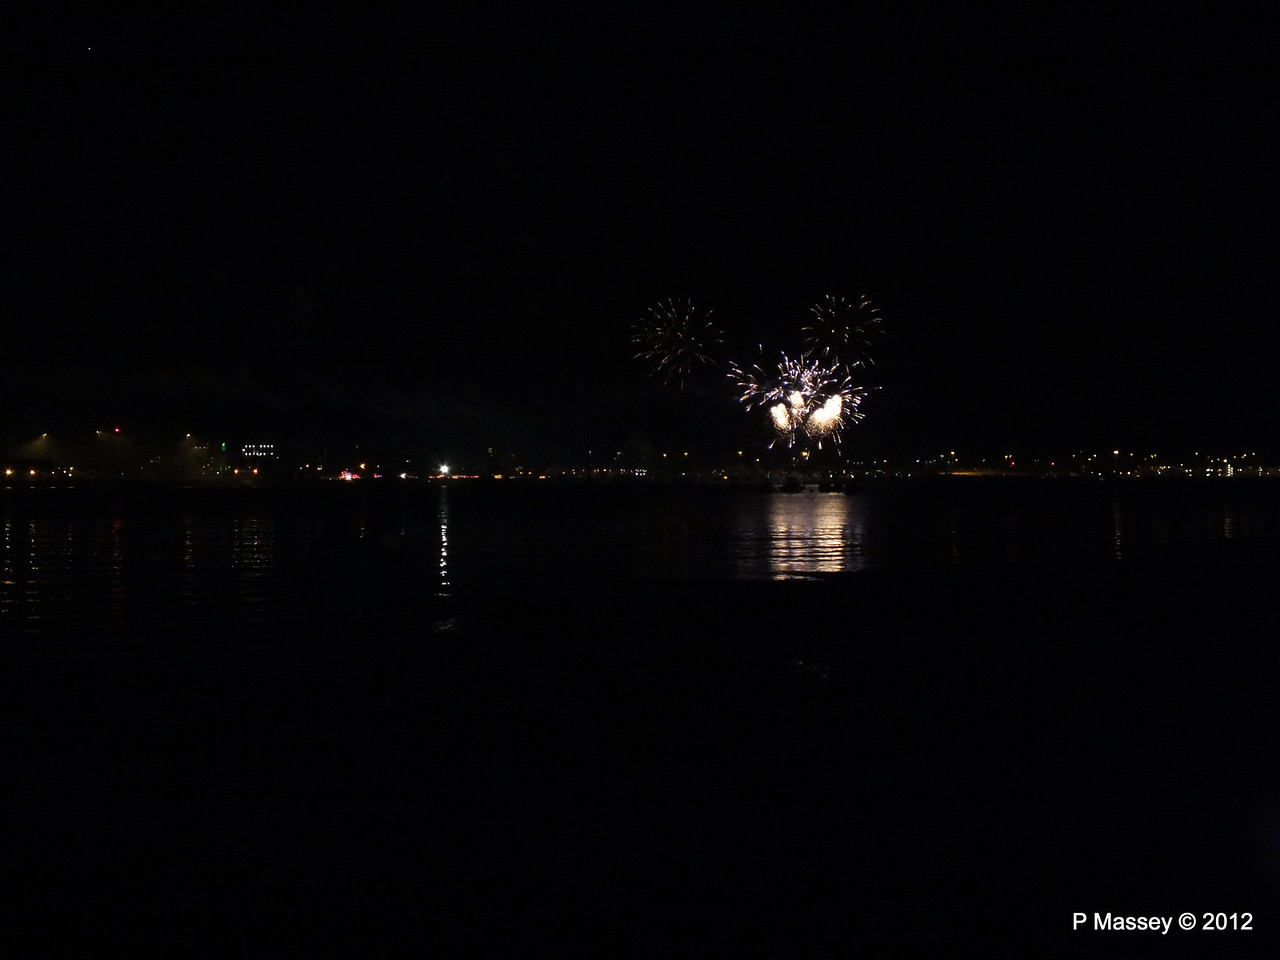 Fireworks off Mayflower Park PDM 03-11-2012 20-52-40